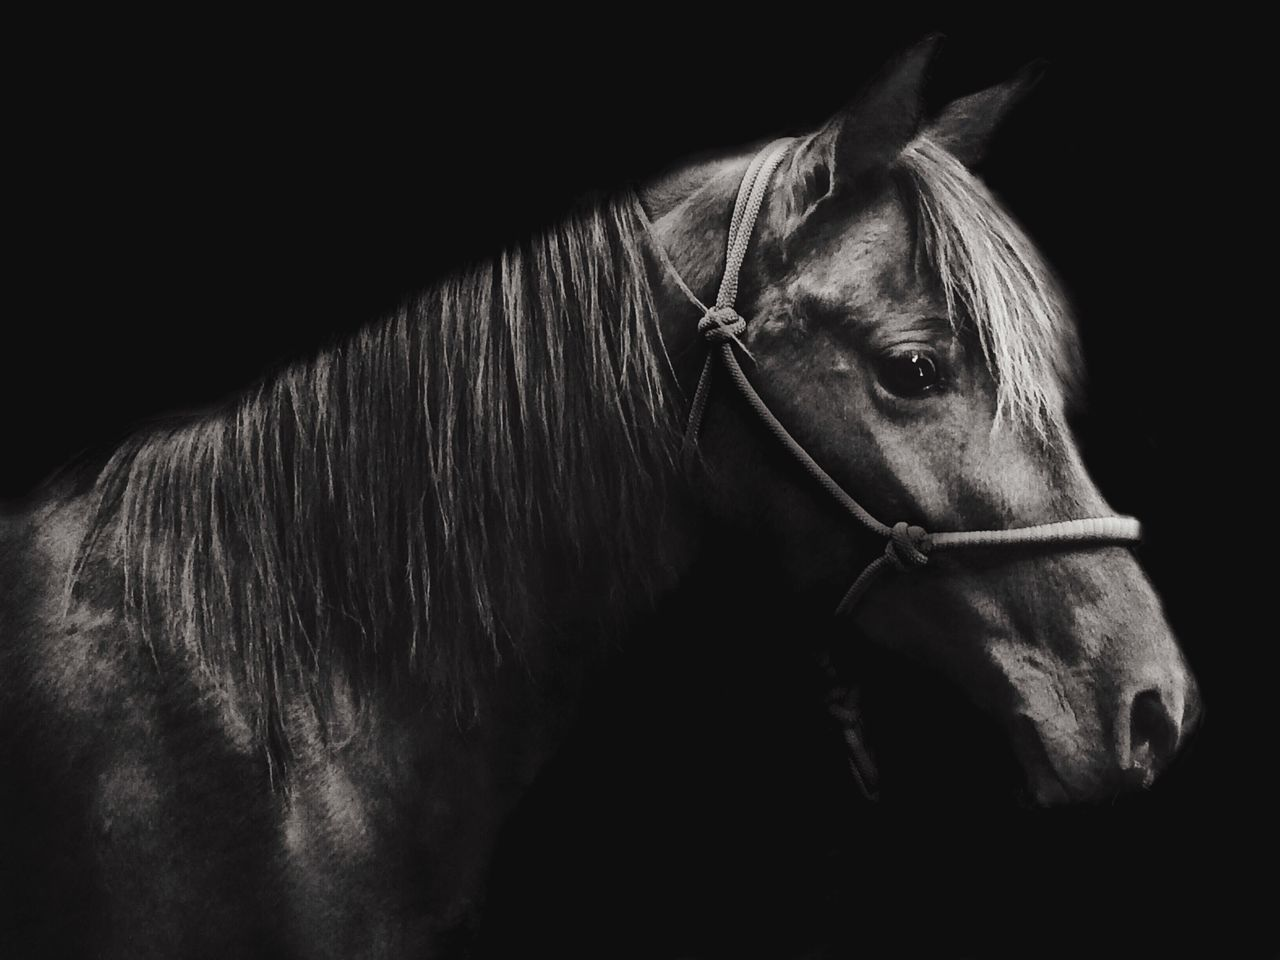 horse, domestic animals, mammal, animal themes, one animal, livestock, bridle, black background, no people, day, outdoors, close-up